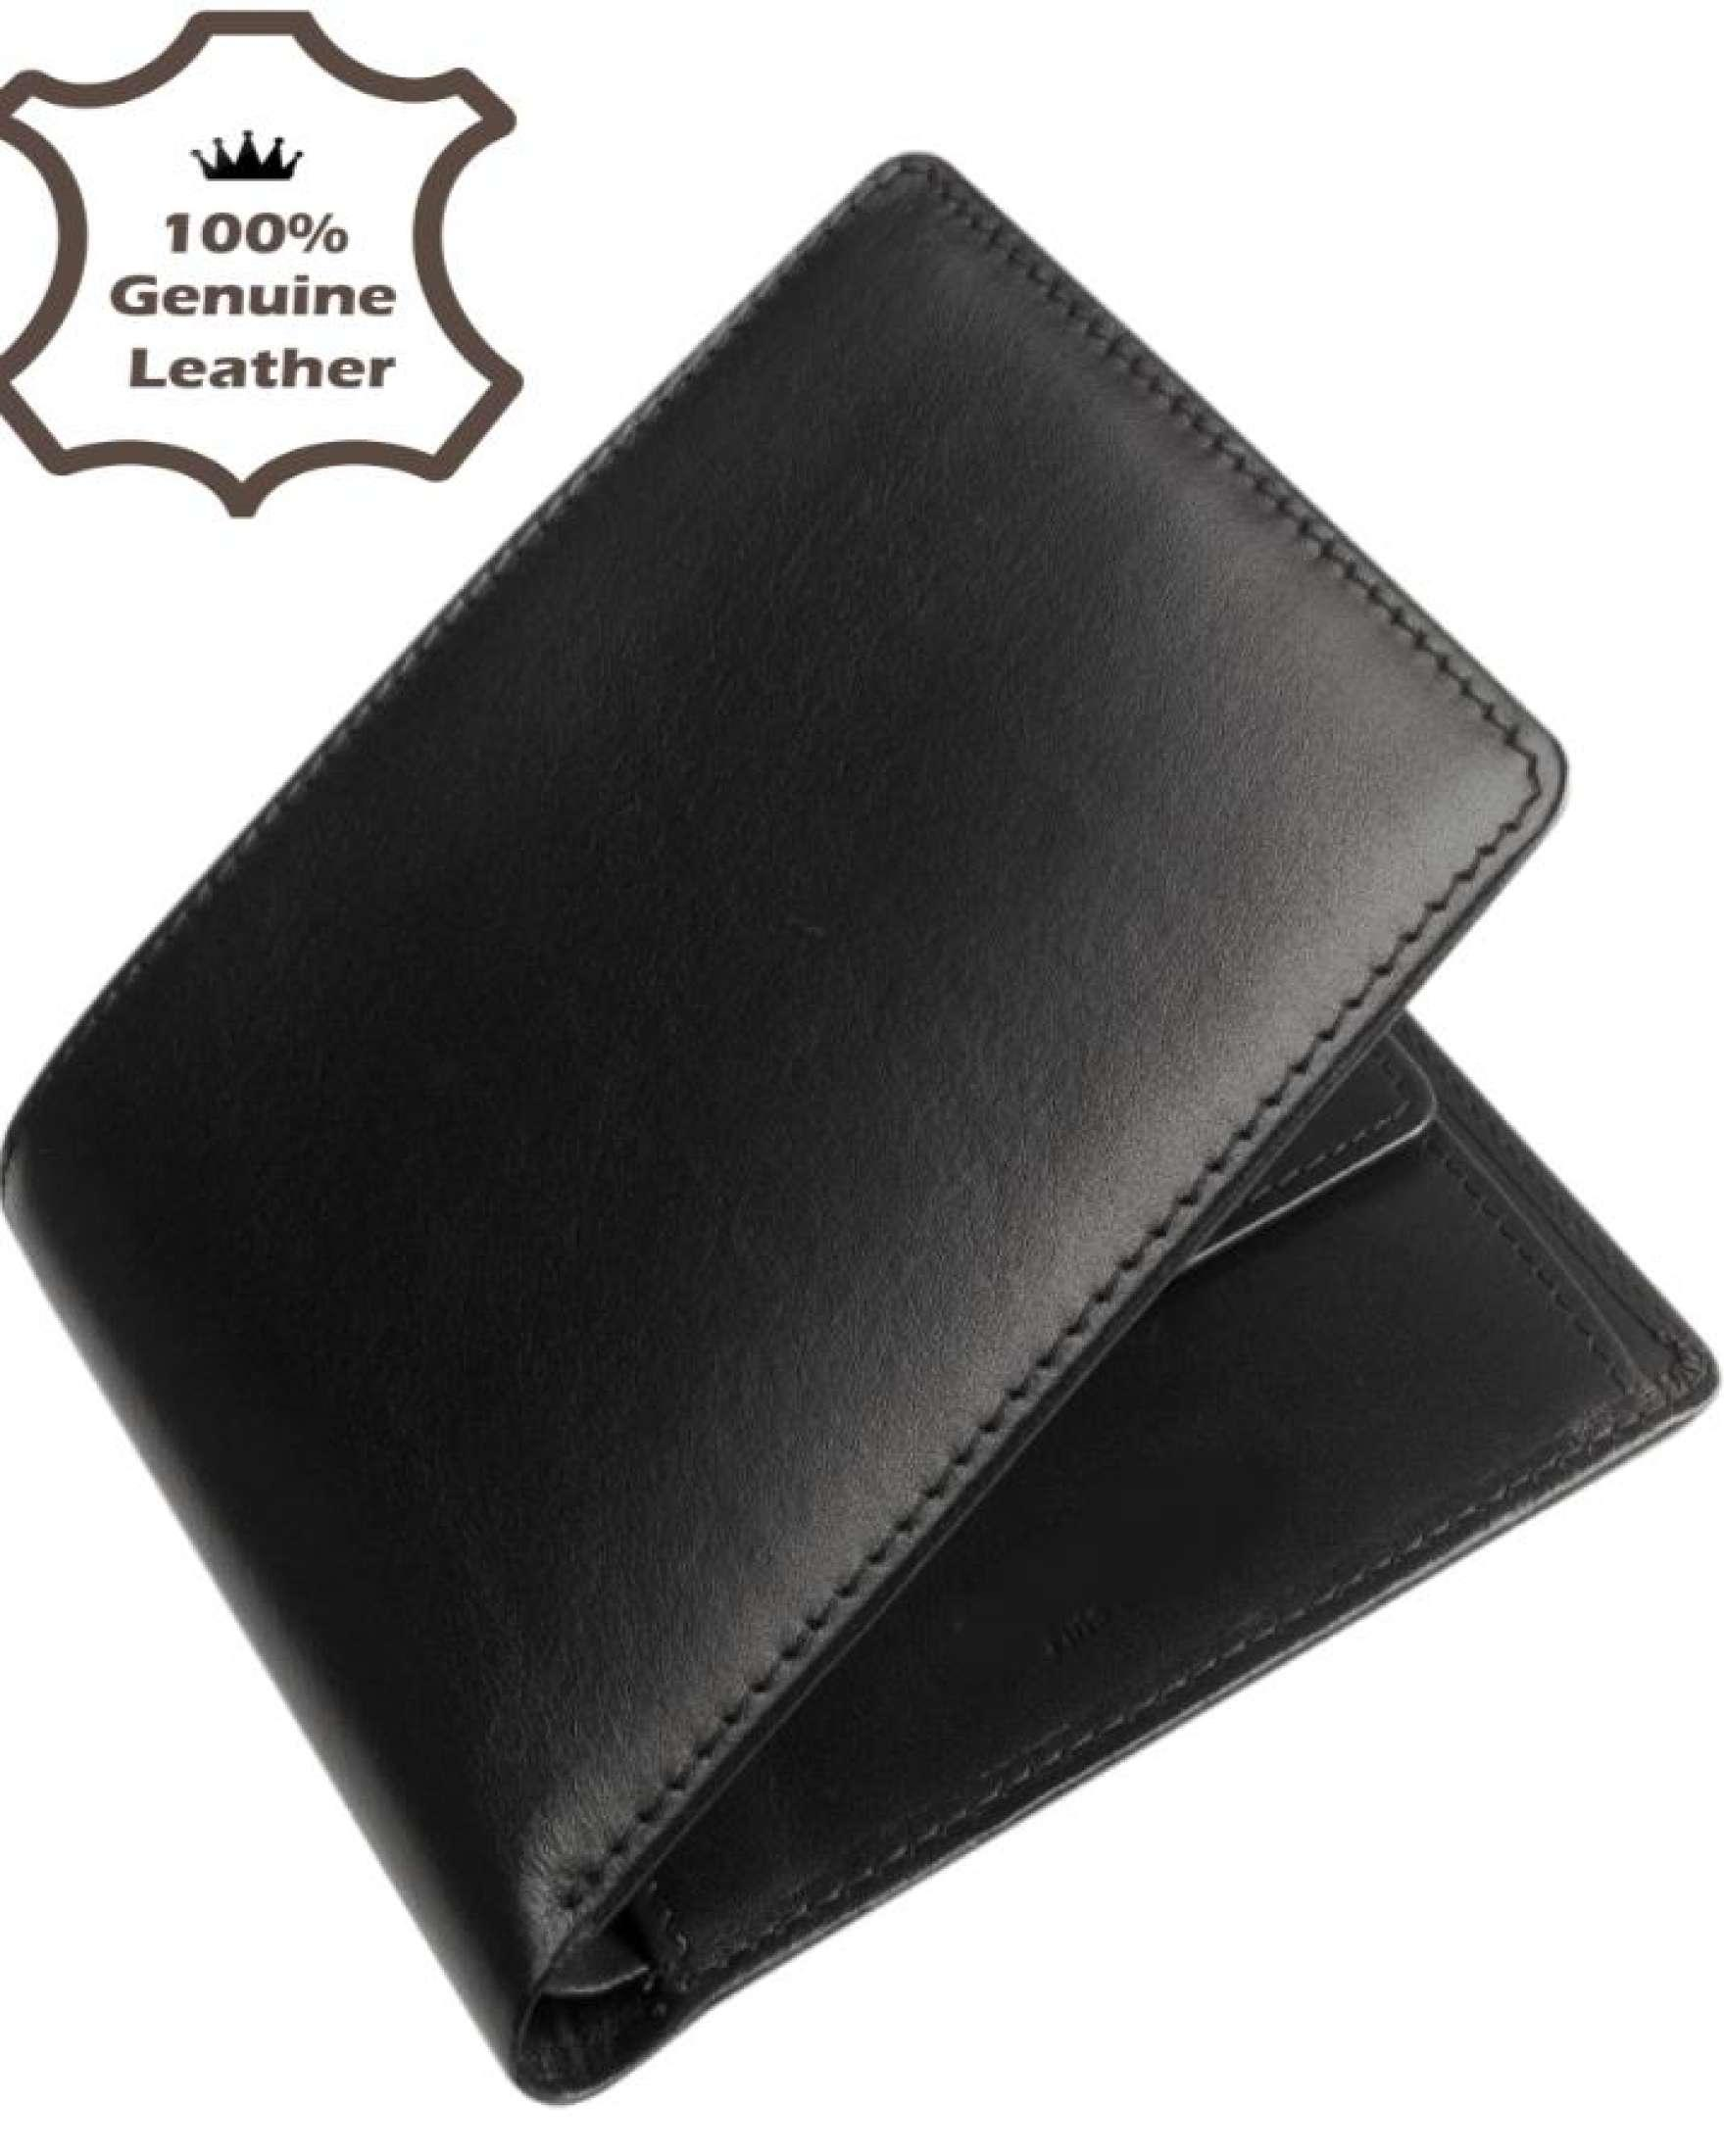 40ecafcc7f6 Buy Men s Wallets   Cardholders Online